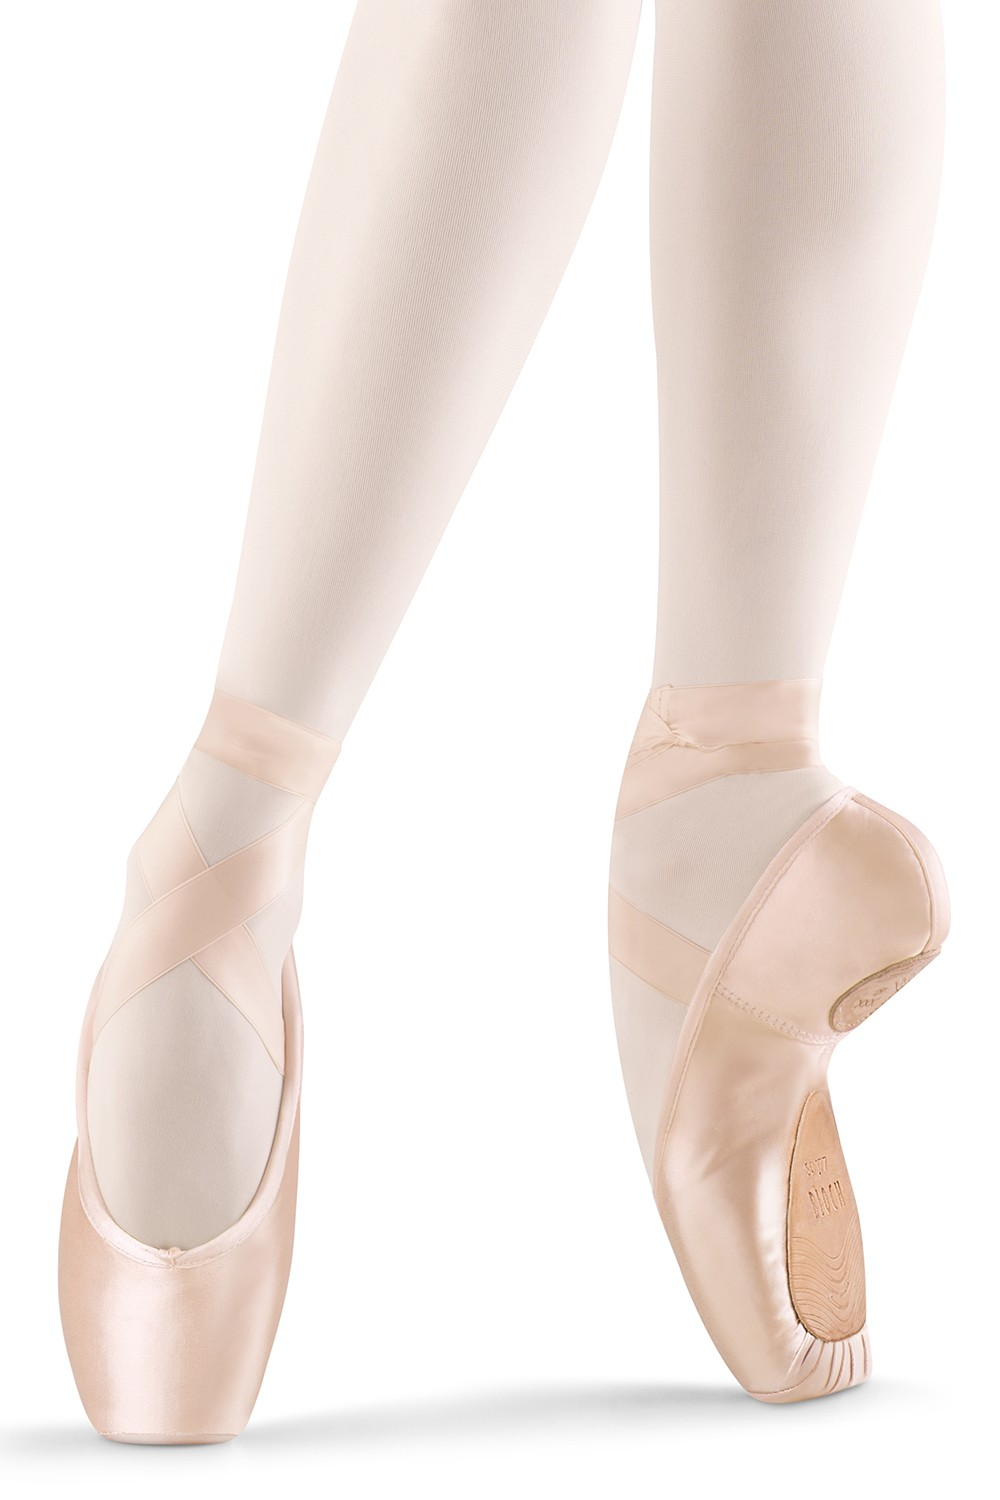 Axi Stretch - Stretch Pointe Shoe Stretch Pointe Shoes